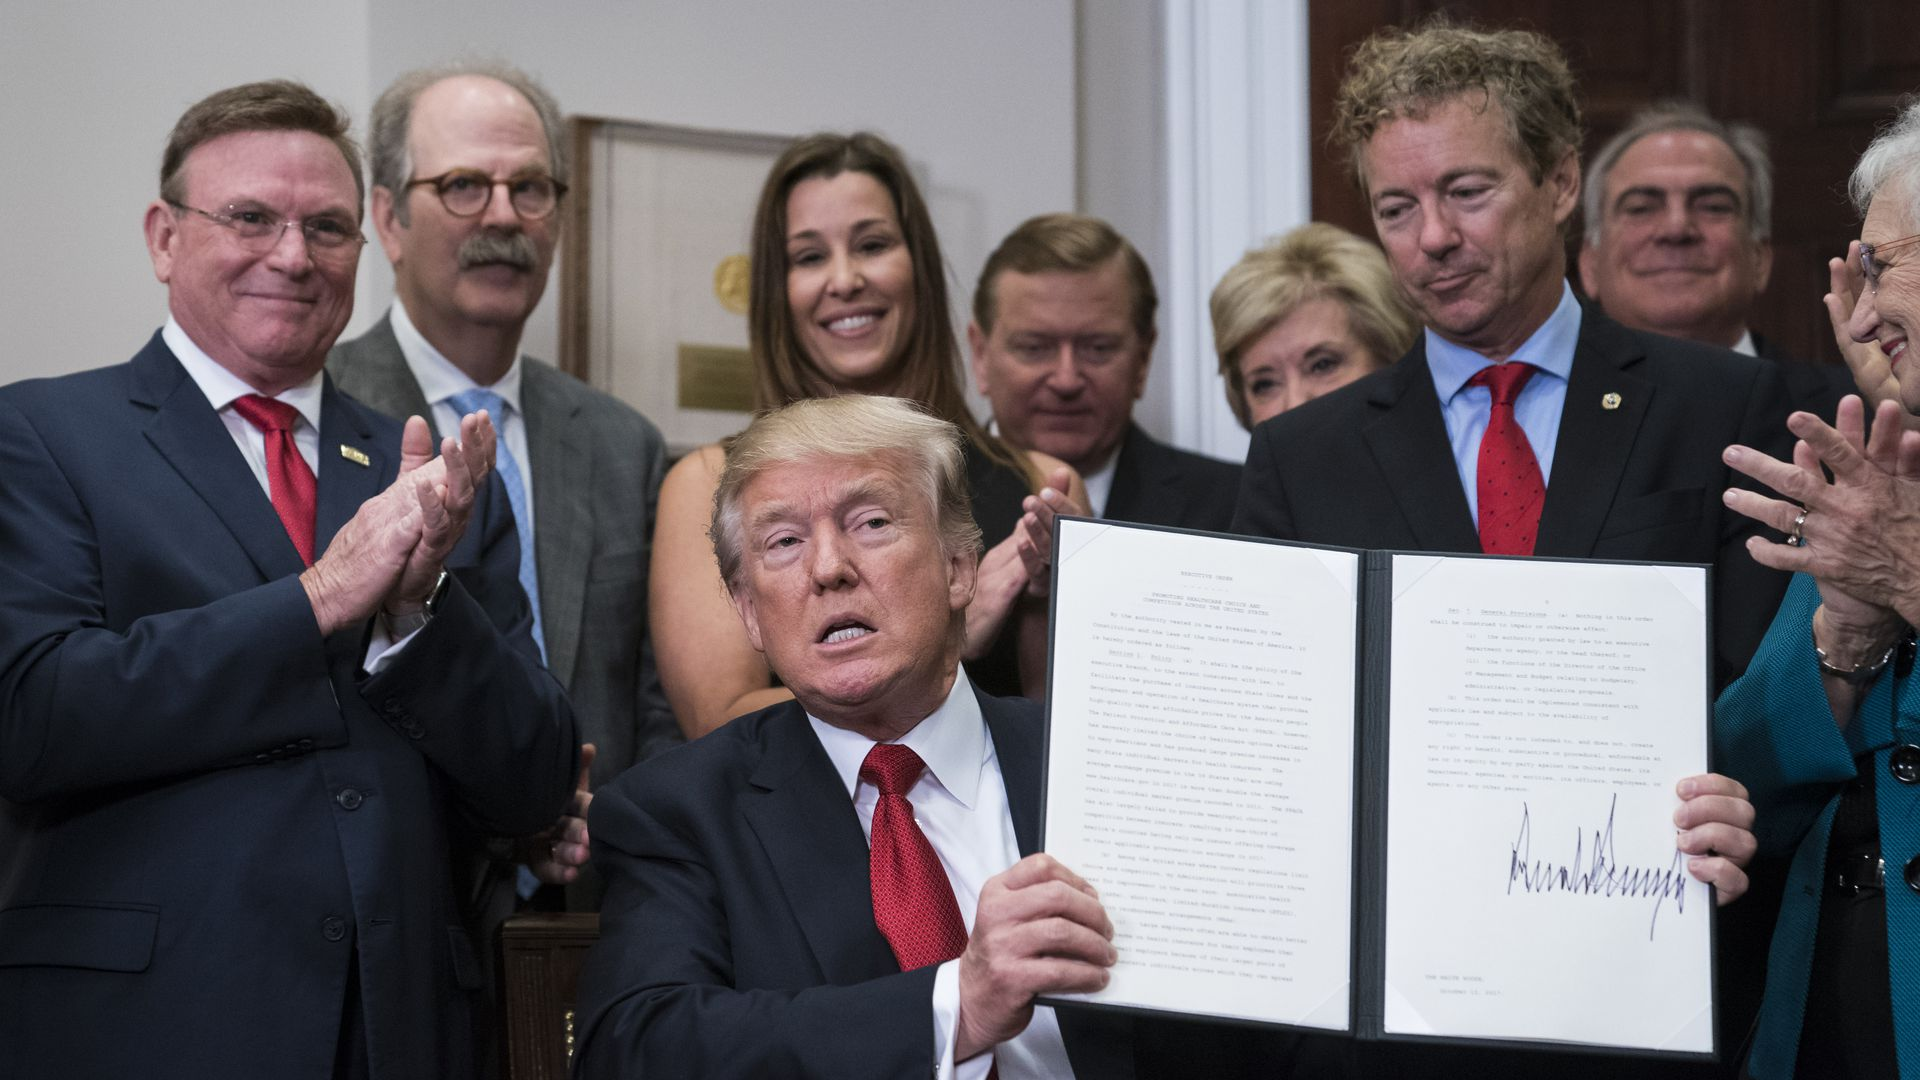 President Trump displays his executive order on health care